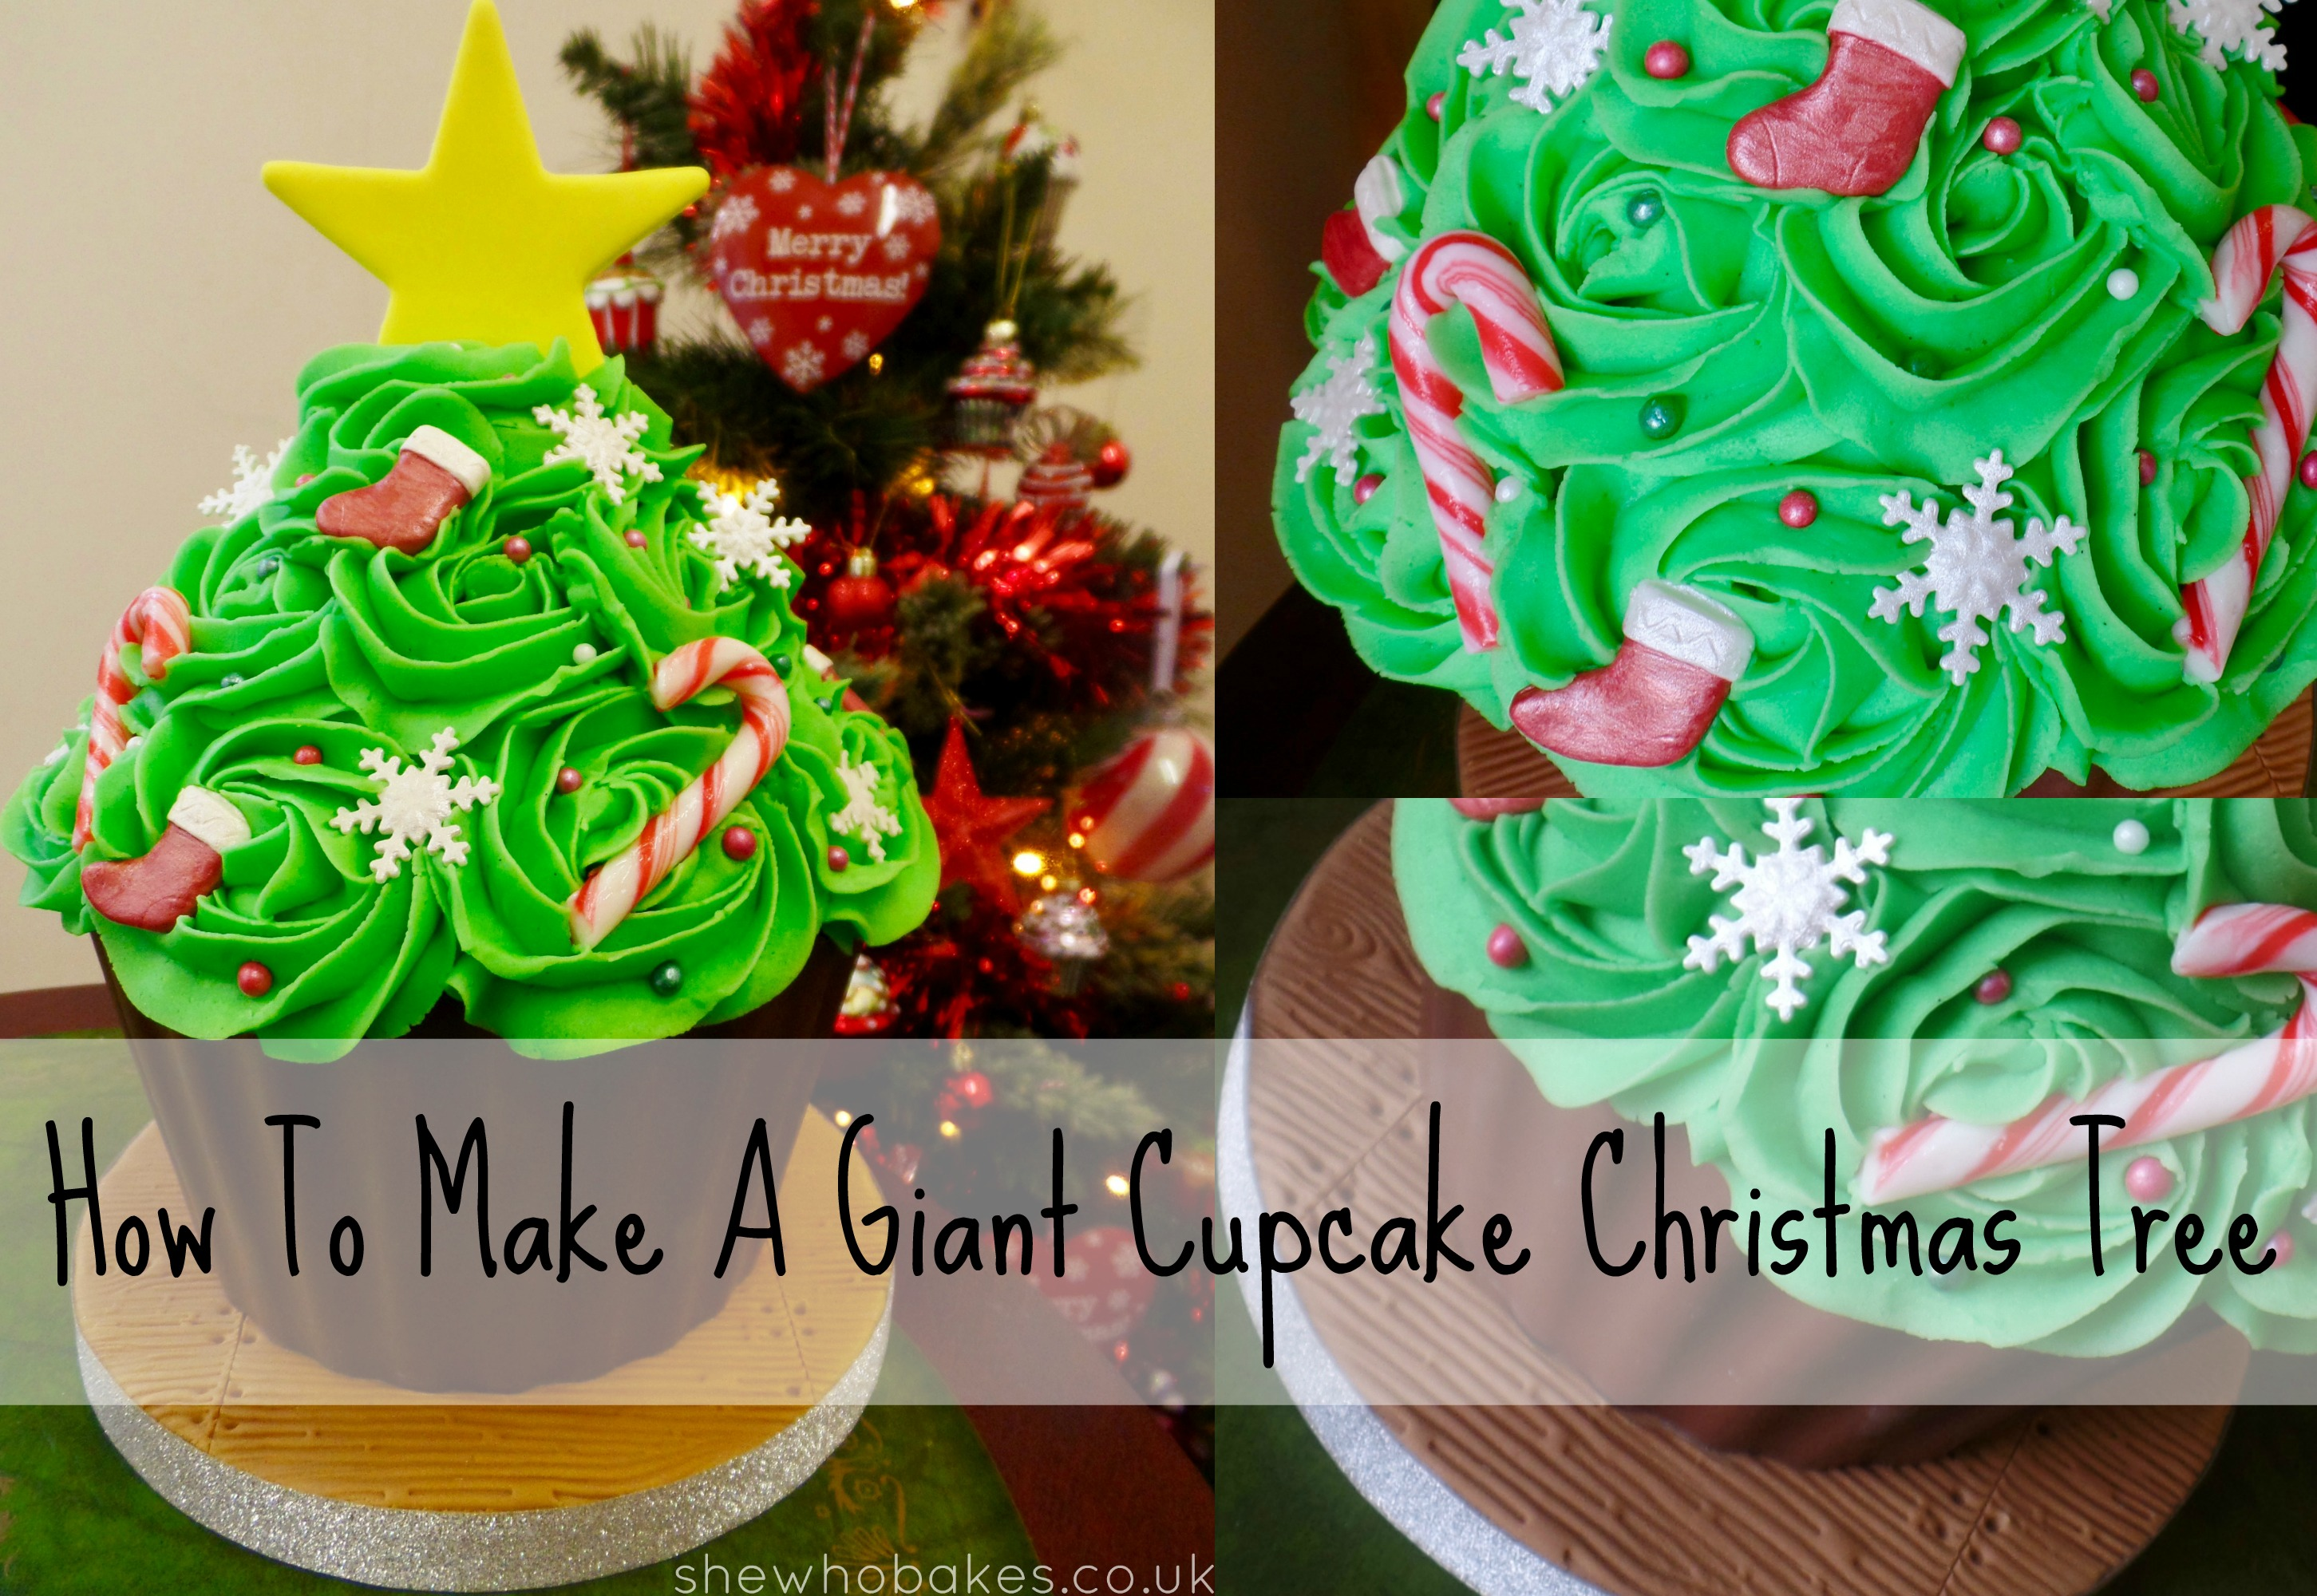 Merry Christmas!! Tis the season of festive bakes and you donu0027t get much more festive than an edible Christmas tree! This fun cake design is easy to make ... & giant cupcake Archives - She Who Bakes